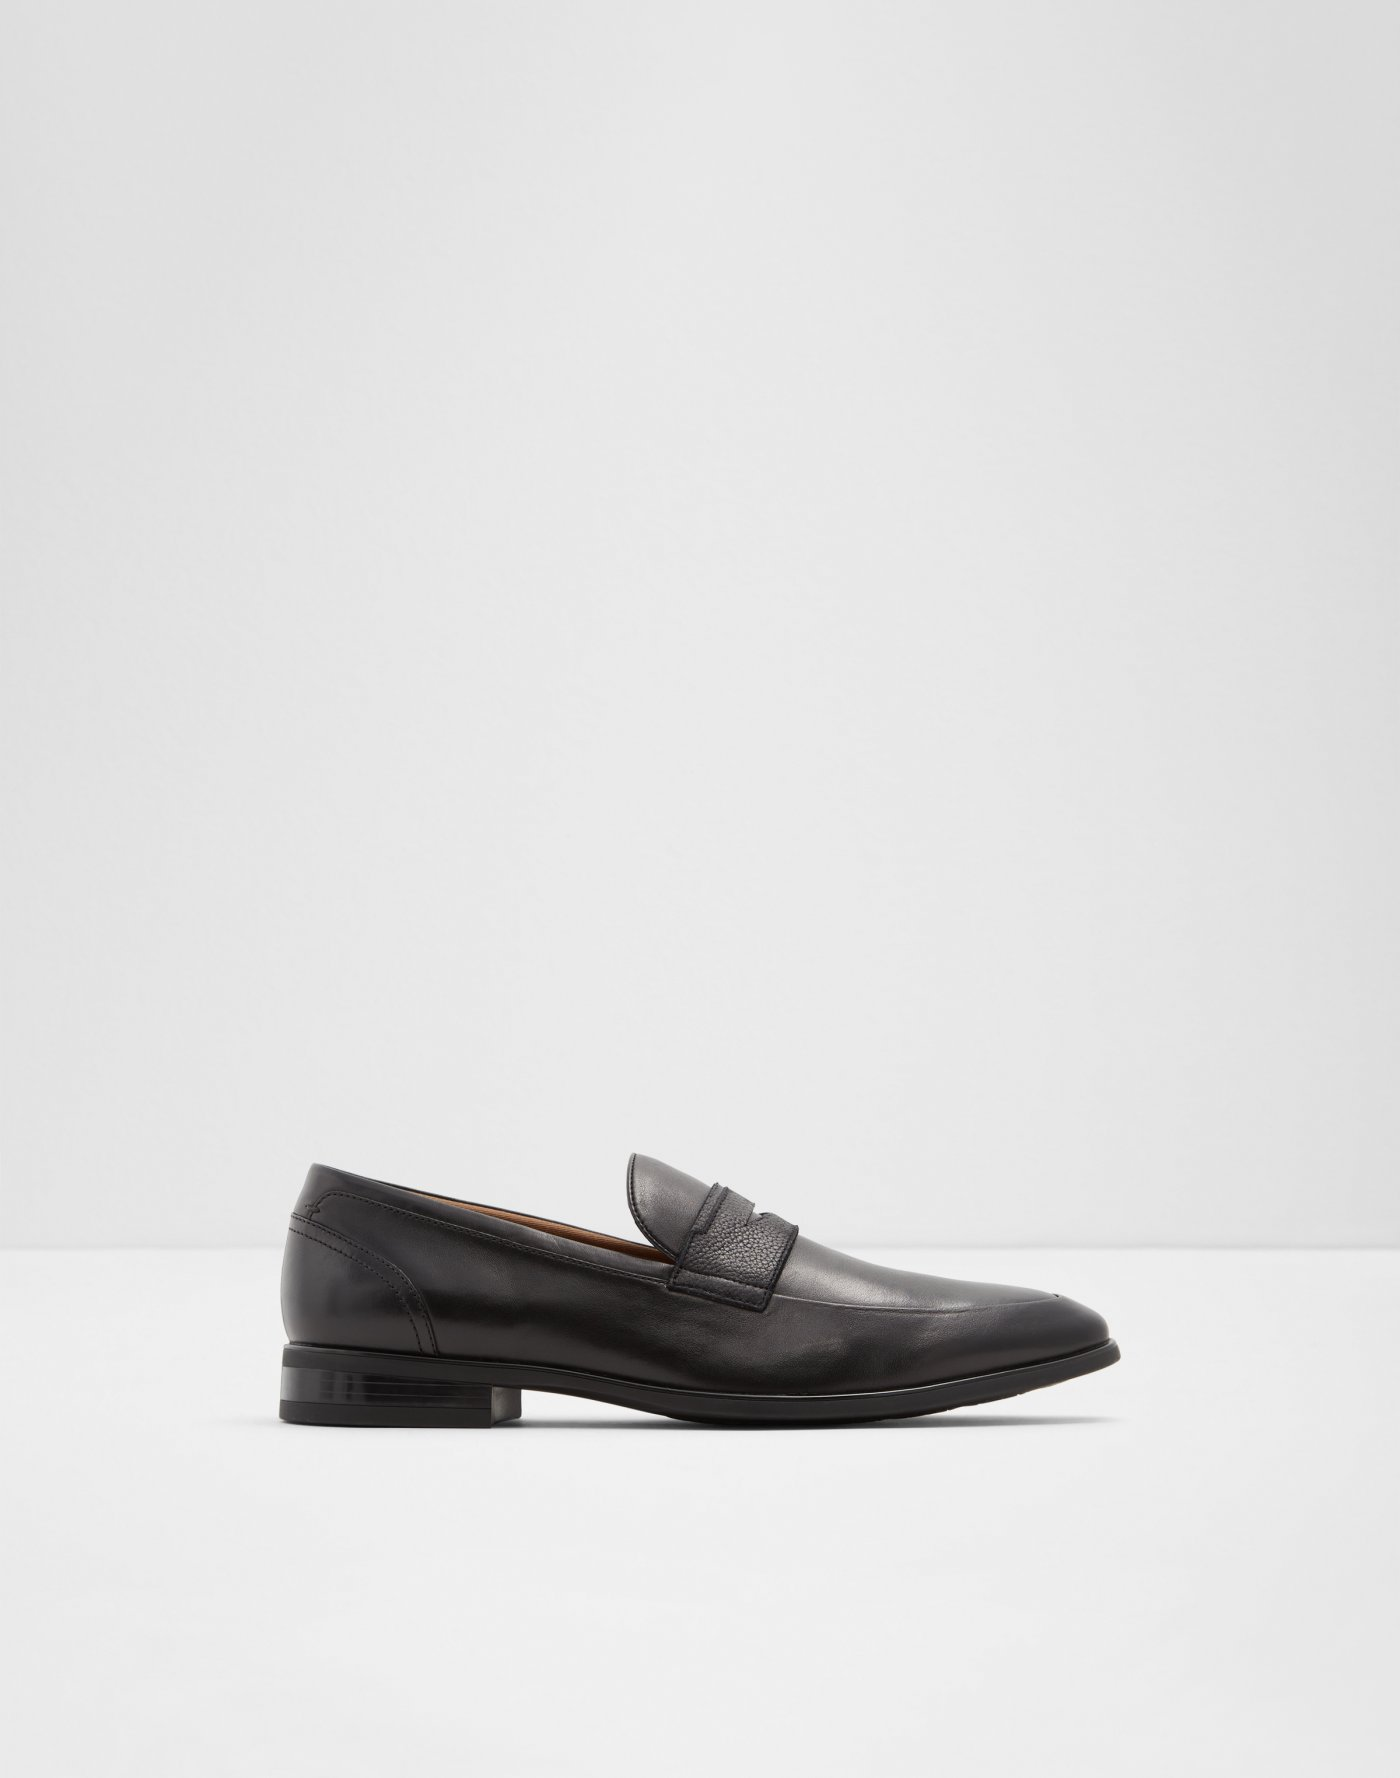 309e1e0a68410 Loafers For Men | Men's Casual and Dress Loafers | ALDO US ...